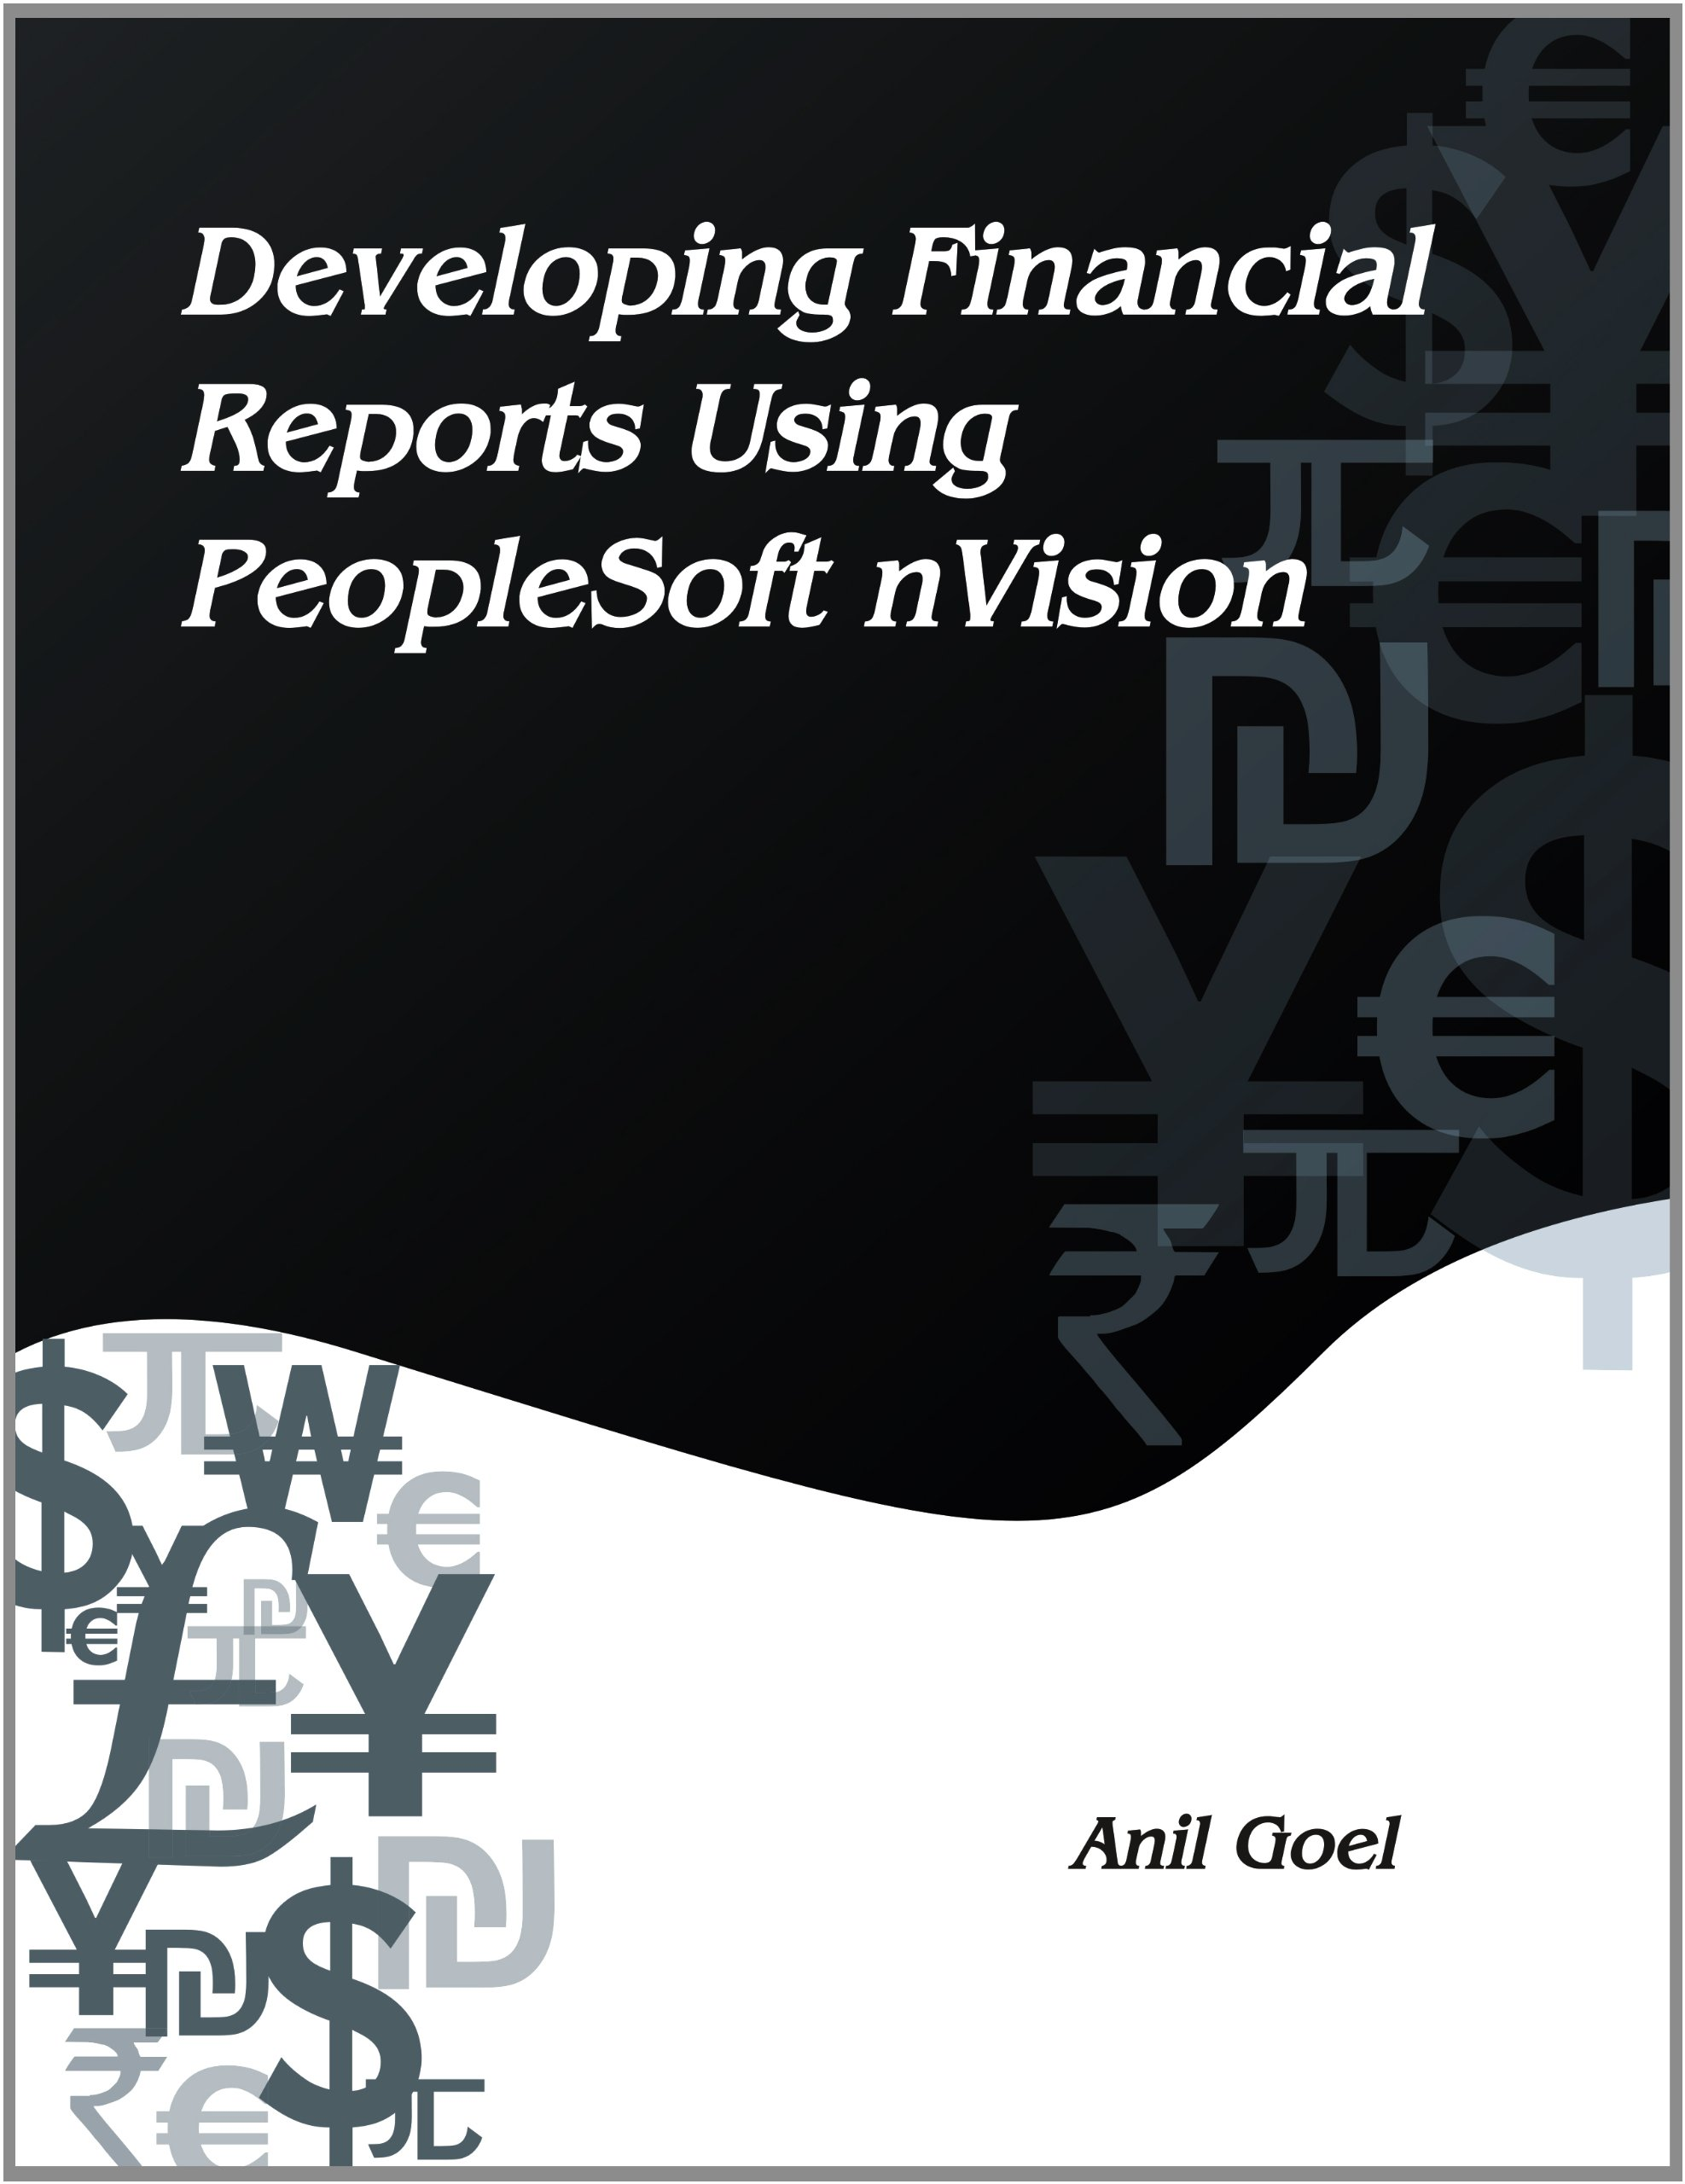 Developing Financial Reports Using PeopleSoft nVision Anil Goel – Nvision Peoplesoft